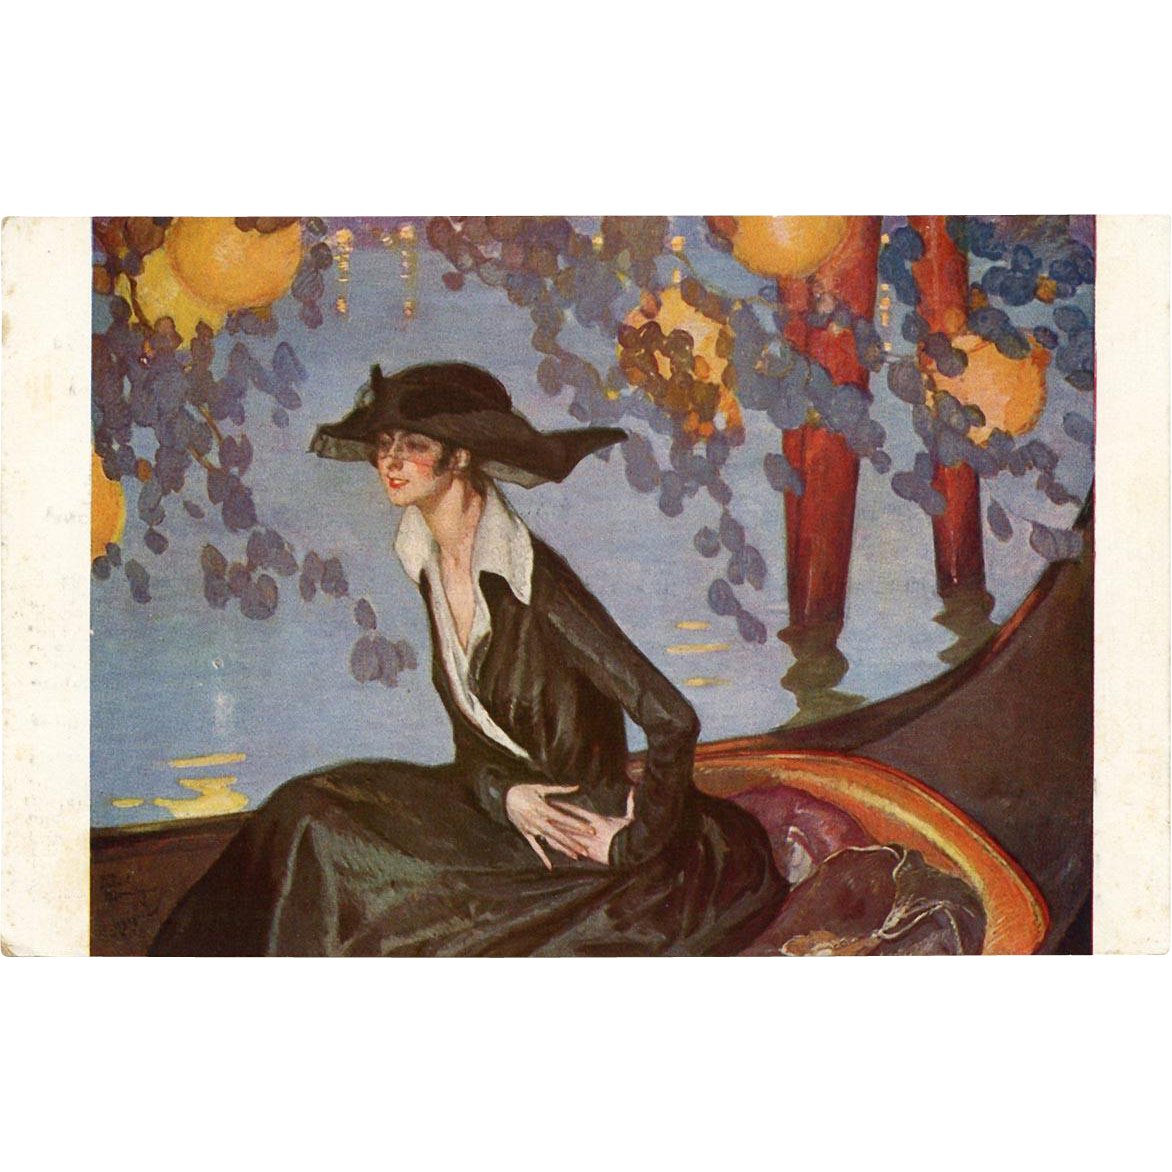 Hour of Serenade by Jean-Gabriel Domergue Salon de Paris Art Reproduction Postcard